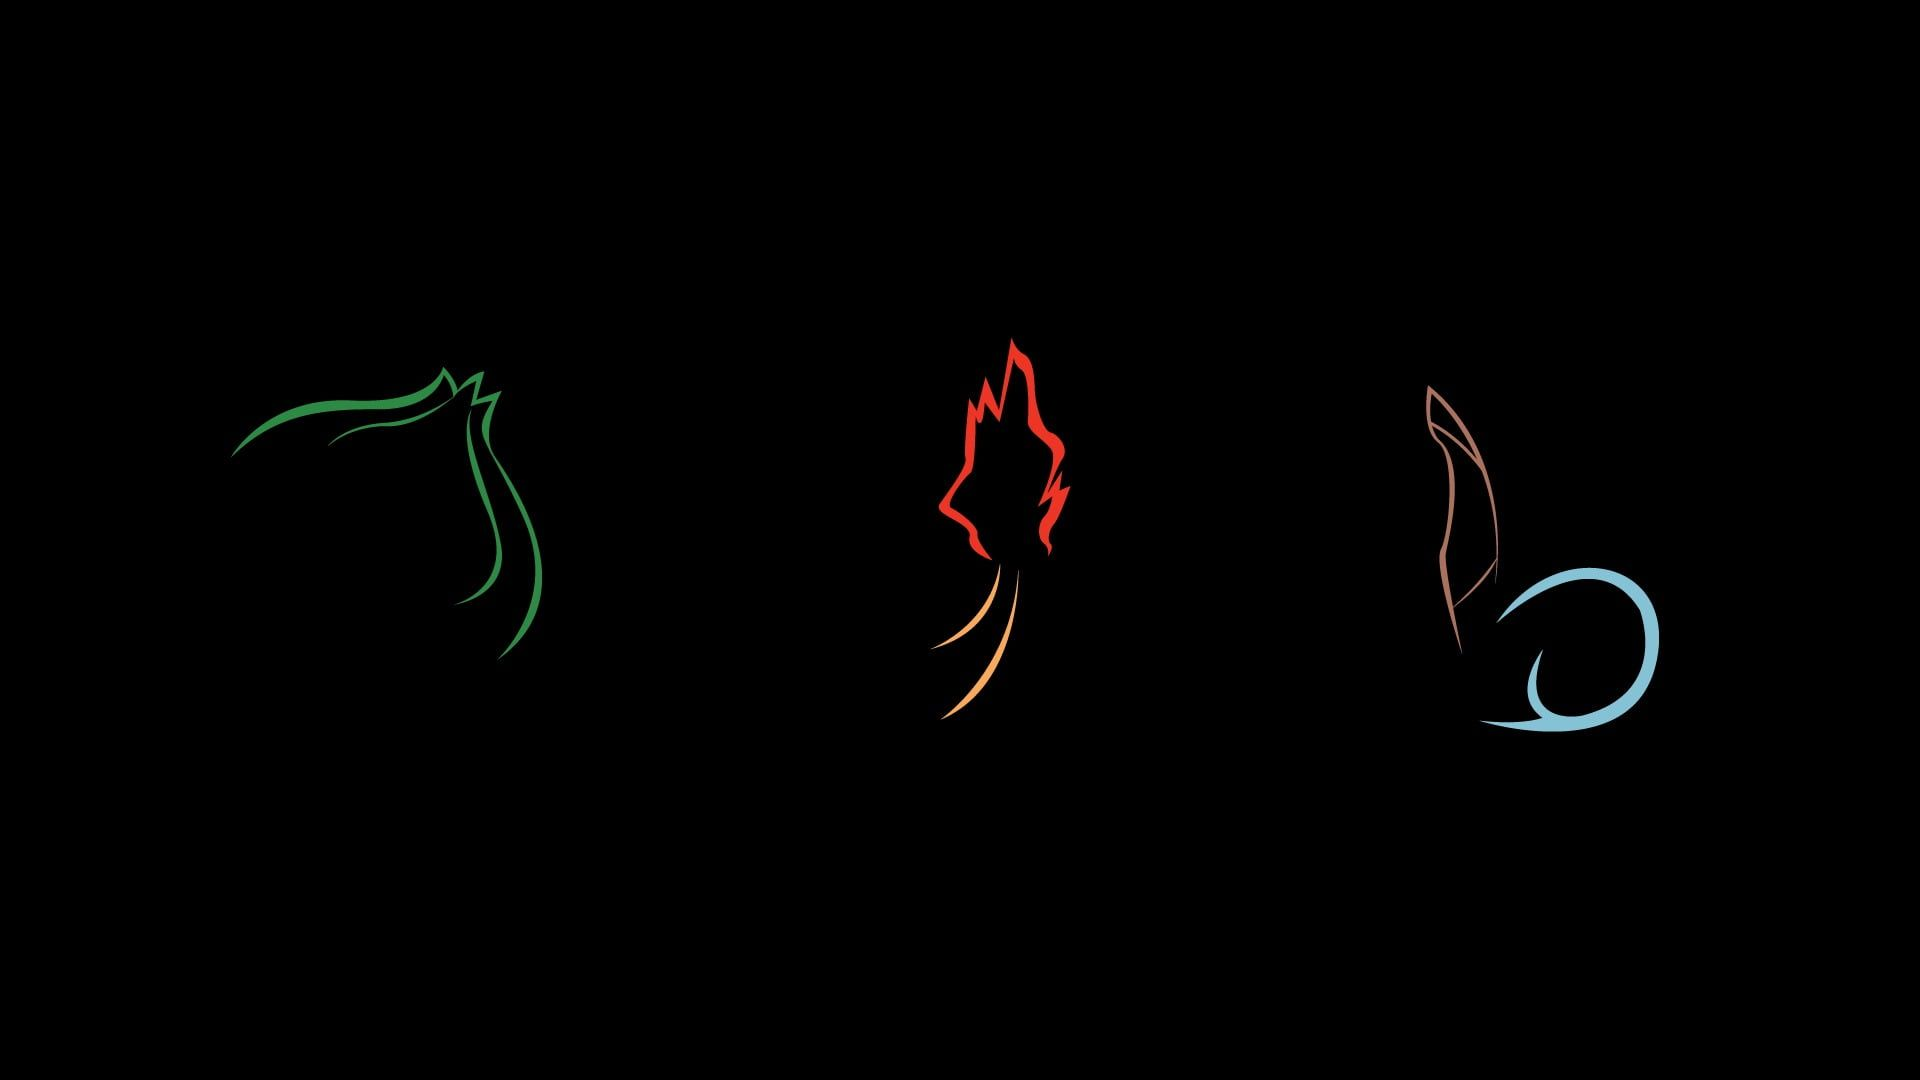 Green Red And Blue Illustrations Minimalism Dark Black Pokemon Elements Charmander Bulbasaur Squirtle 1080p Wallpape Pokemon Wallpaper Illustration